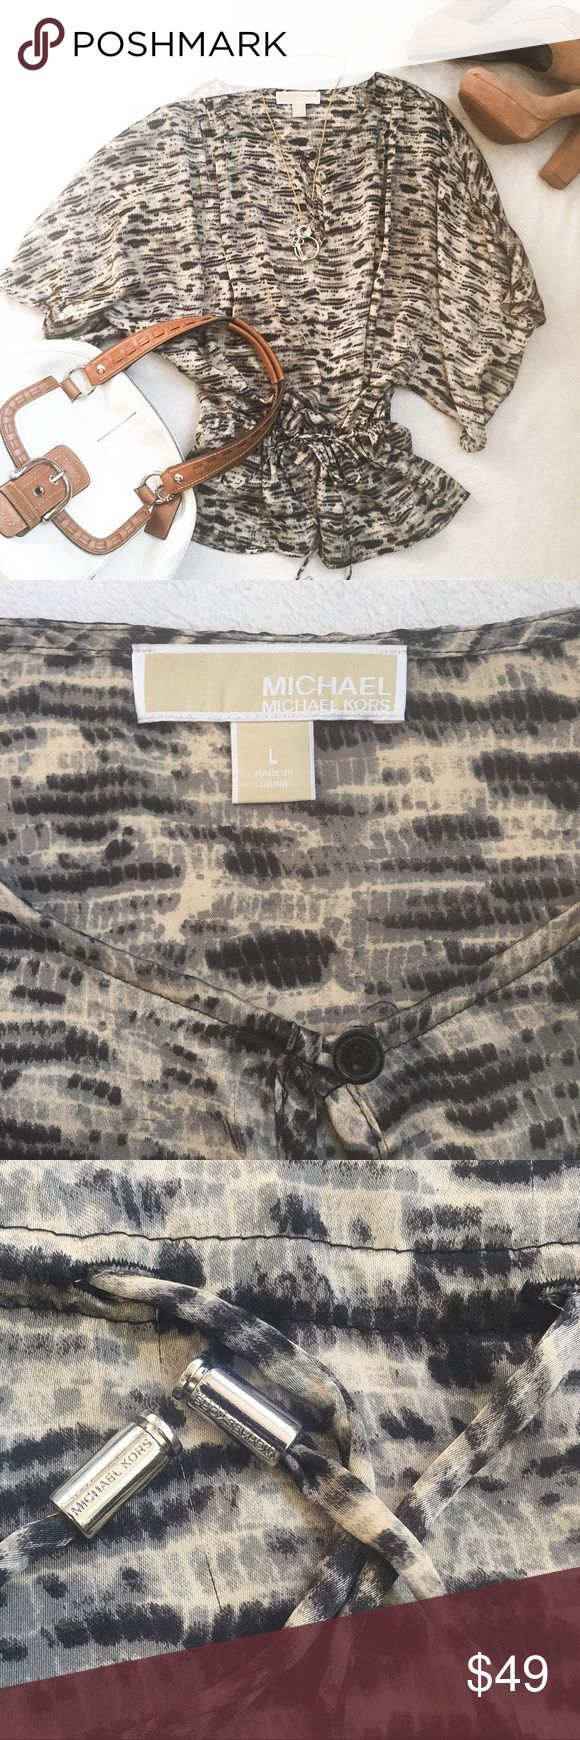 NWOT Michael Kors Batwing Kimono Blouse NWOT Michael Kors Batwing Kimono Drawstring Blouse. Never Worn, No flaws. Stunning Yet Casual Batwing/Dolman Sleeve Blouse from Michael Michael Kors. Drawstring Waist w/ Logo Stamped Hardwear. Silky Non-Stretchy Wrinkle Resistant 100% Poly Fabric. Great Neutral Color Pattern. Comfortable & Flattering Style. MICHAEL Michael Kors Tops Blouses